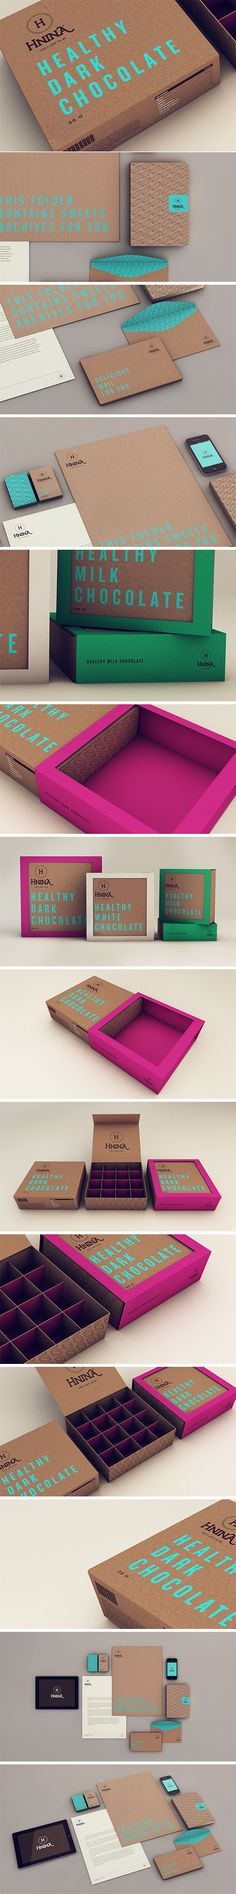 Isabela Rodrigues / Sweety Branding Studio– Packaging and identity for Hnina, a healthy chocolate alternative Design Web, Logo Design, Brand Identity Design, Graphic Design Branding, Label Design, Branding And Packaging, Cool Packaging, Business Branding, Packaging Design